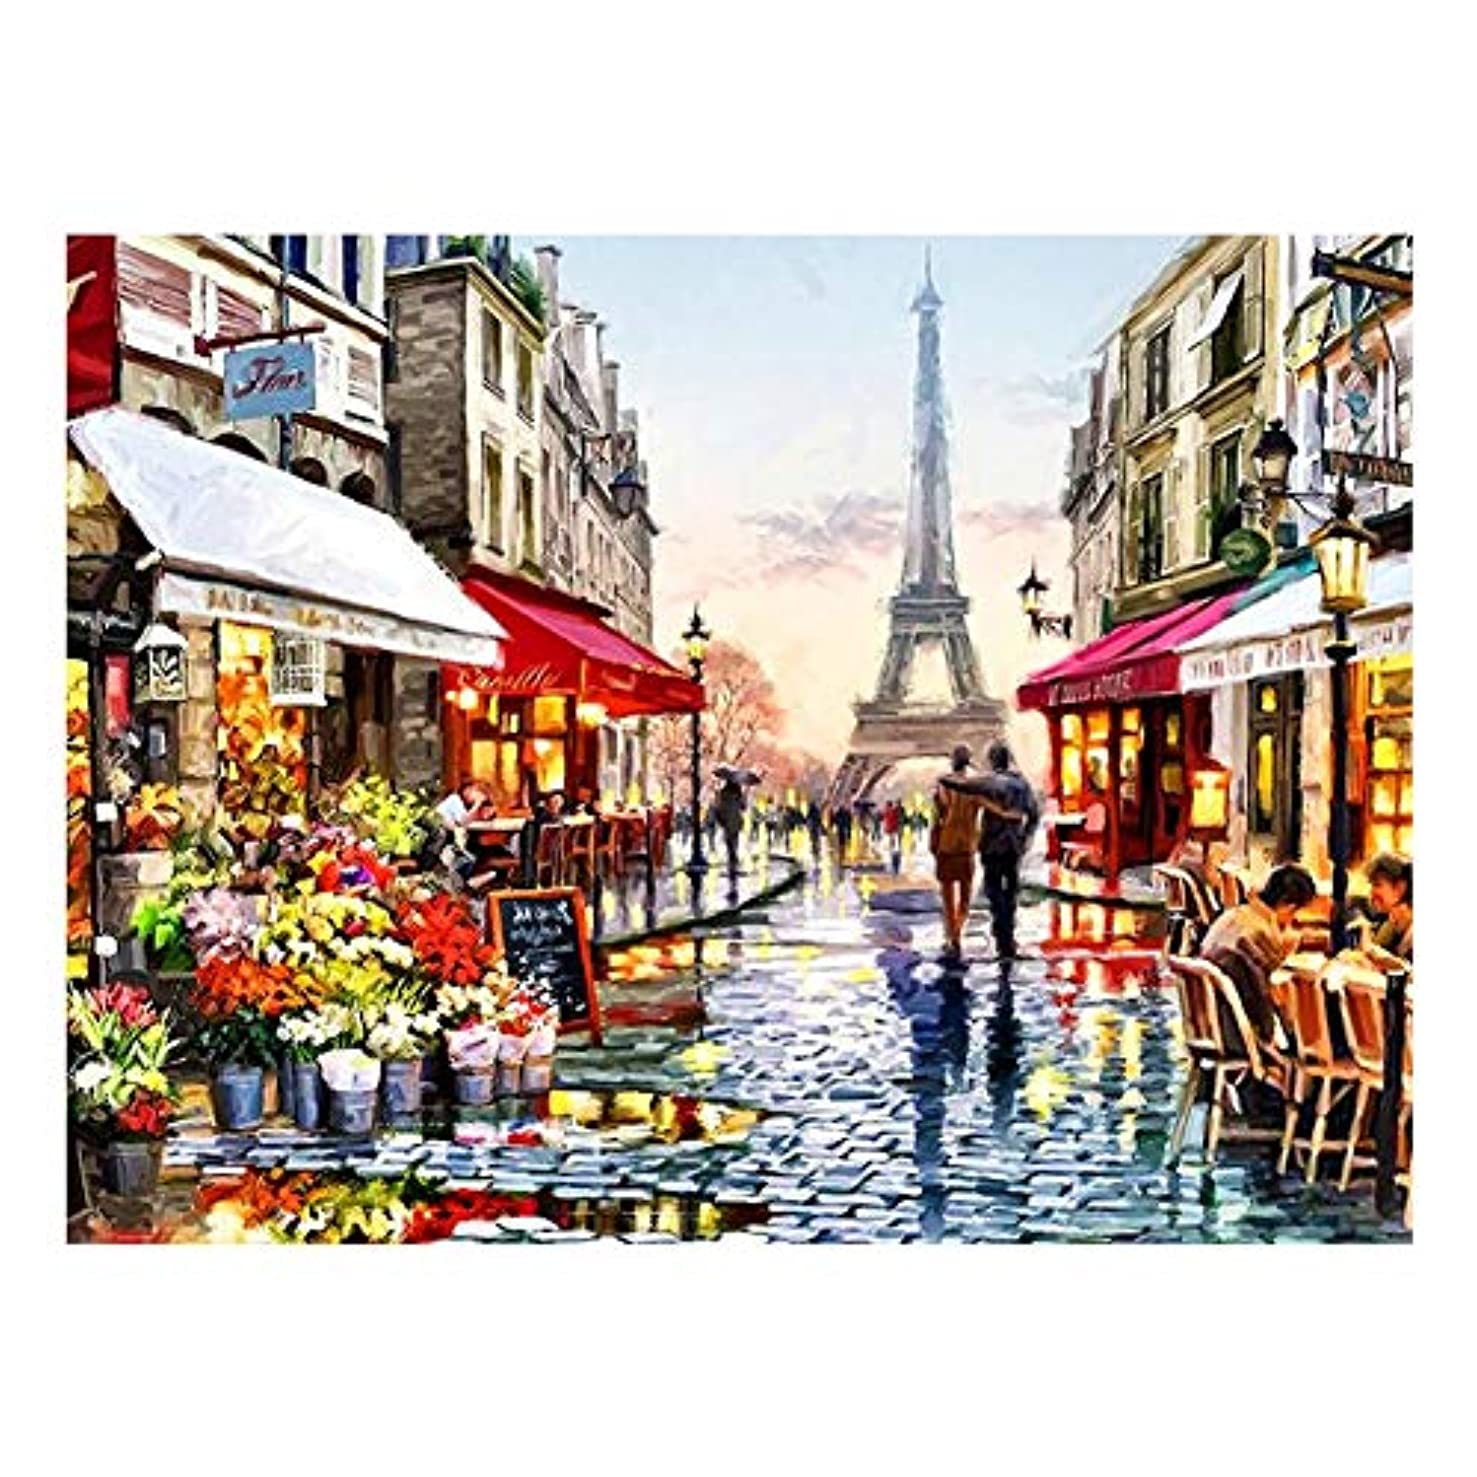 BOSHUN 5D DIY Diamond Painting by Number Kits for Adults, Full Drill Cross Stitch Arts Craft for Home Wall Decor- Romantic Paris Street(11.8X15.7inch/30X40cm)